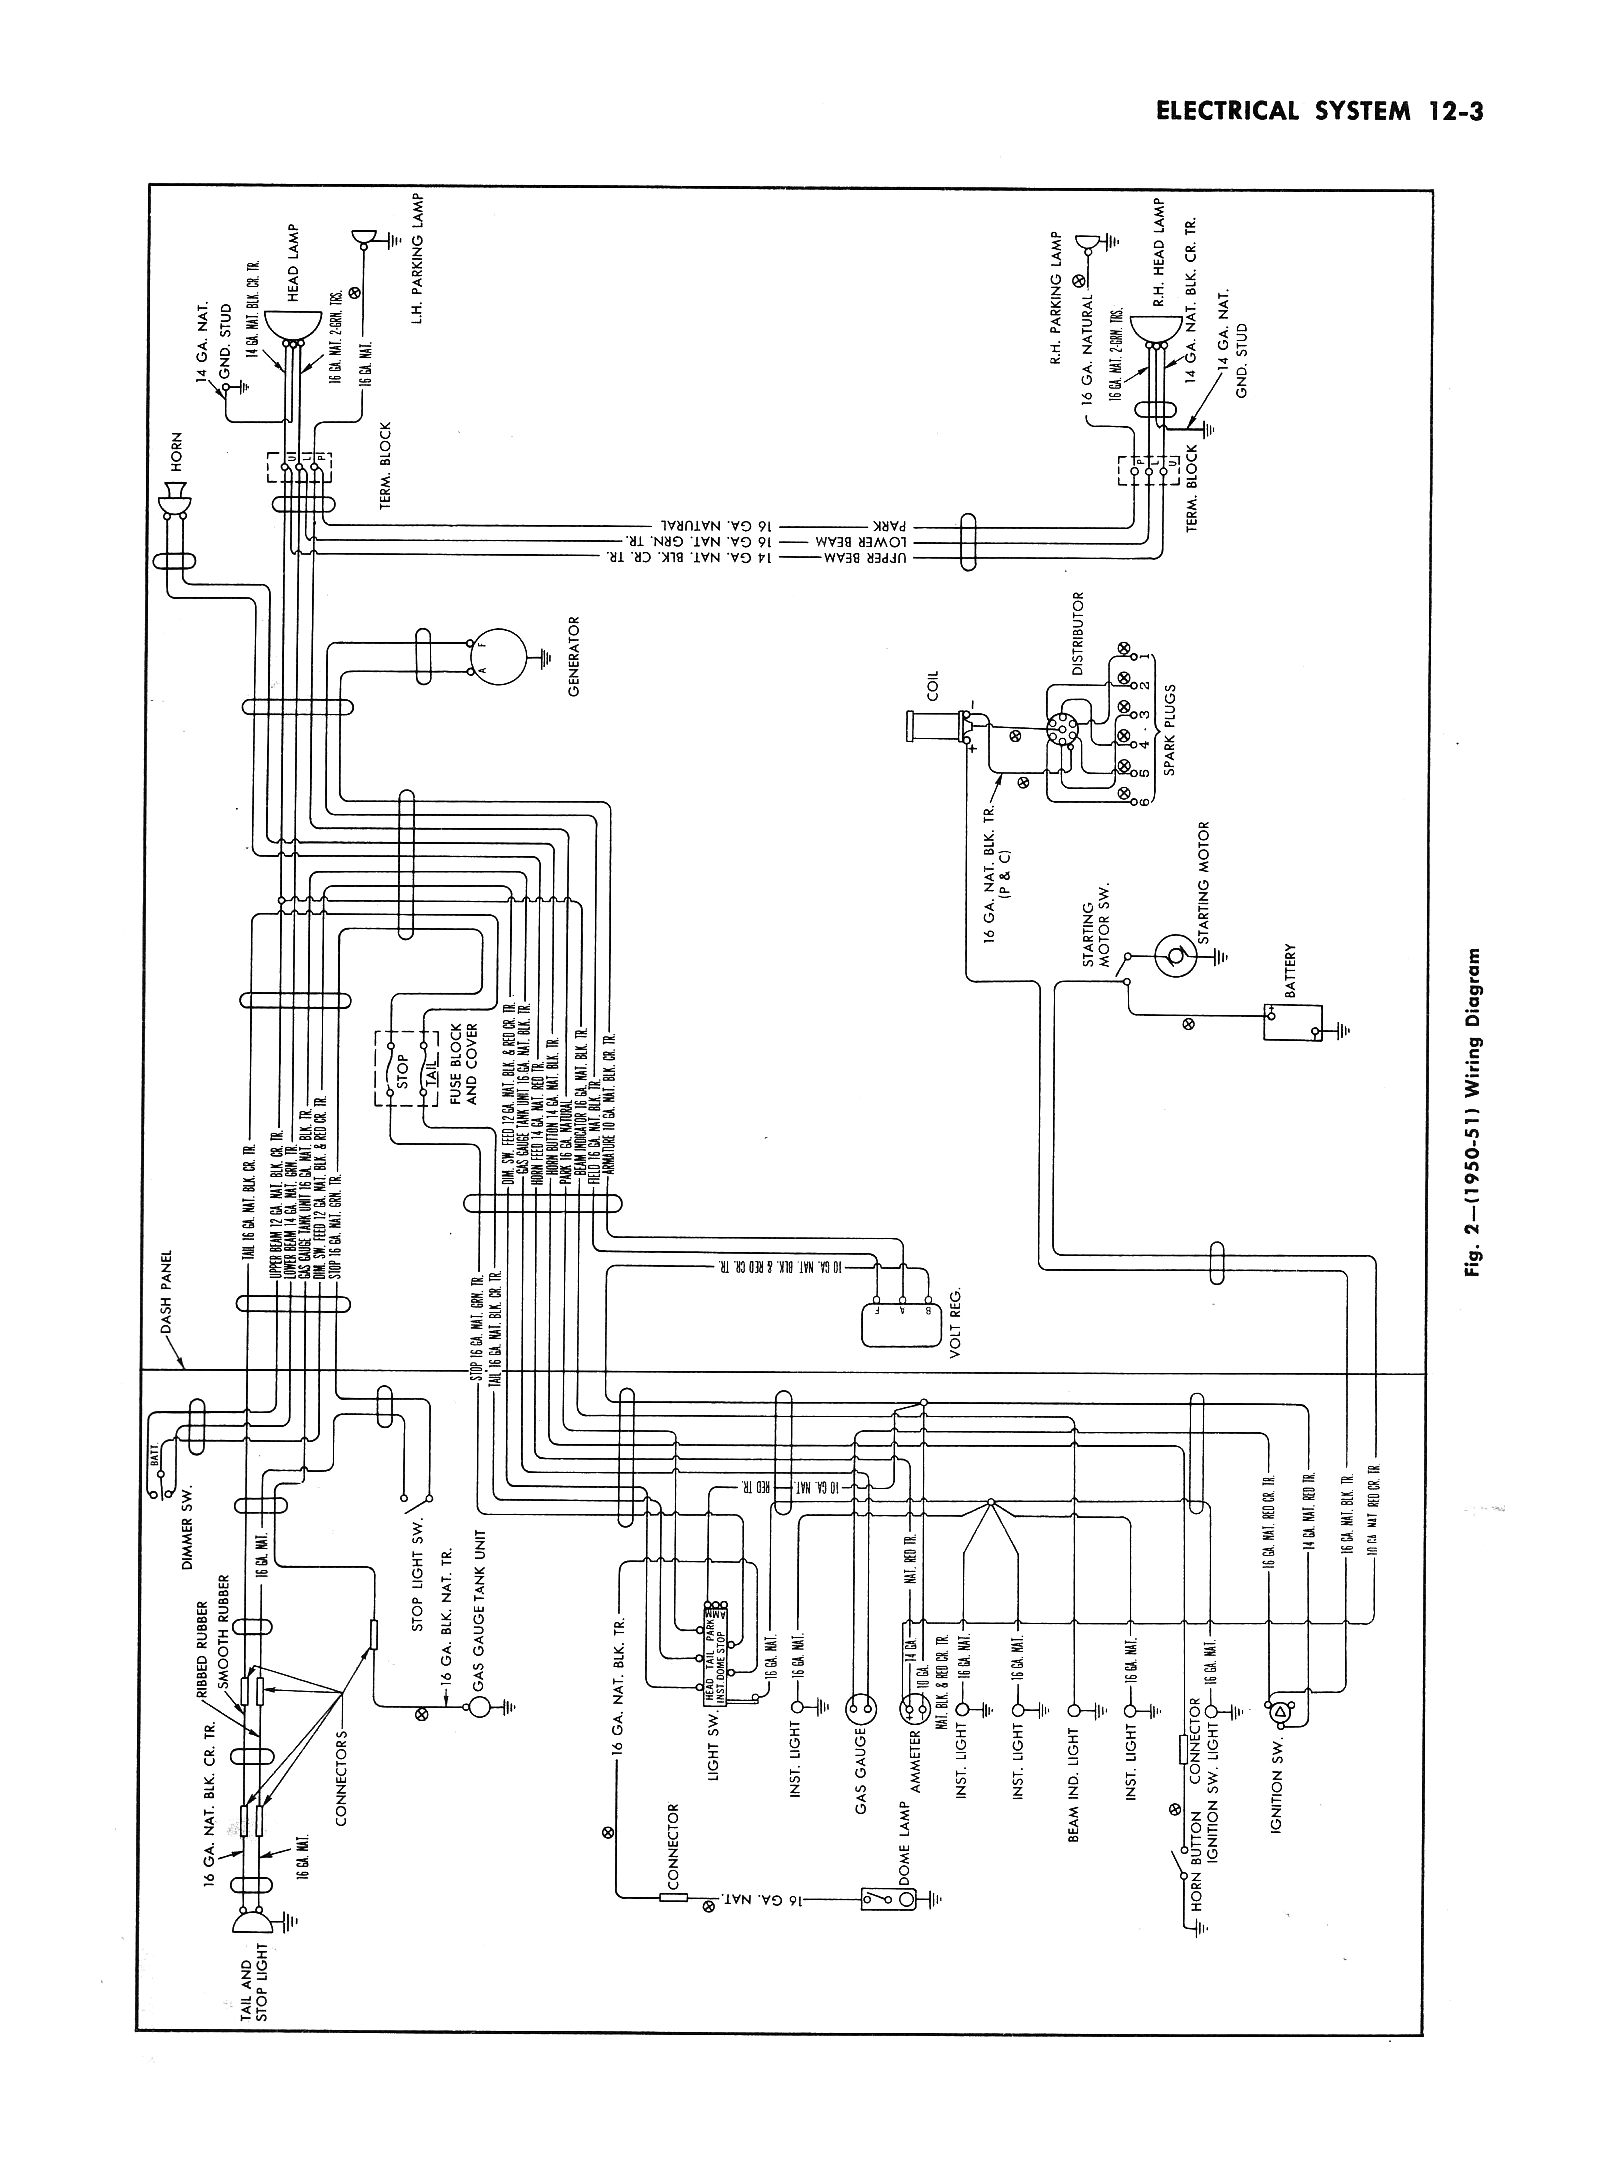 51ctsm1203 dim engine diagram wiring diagram